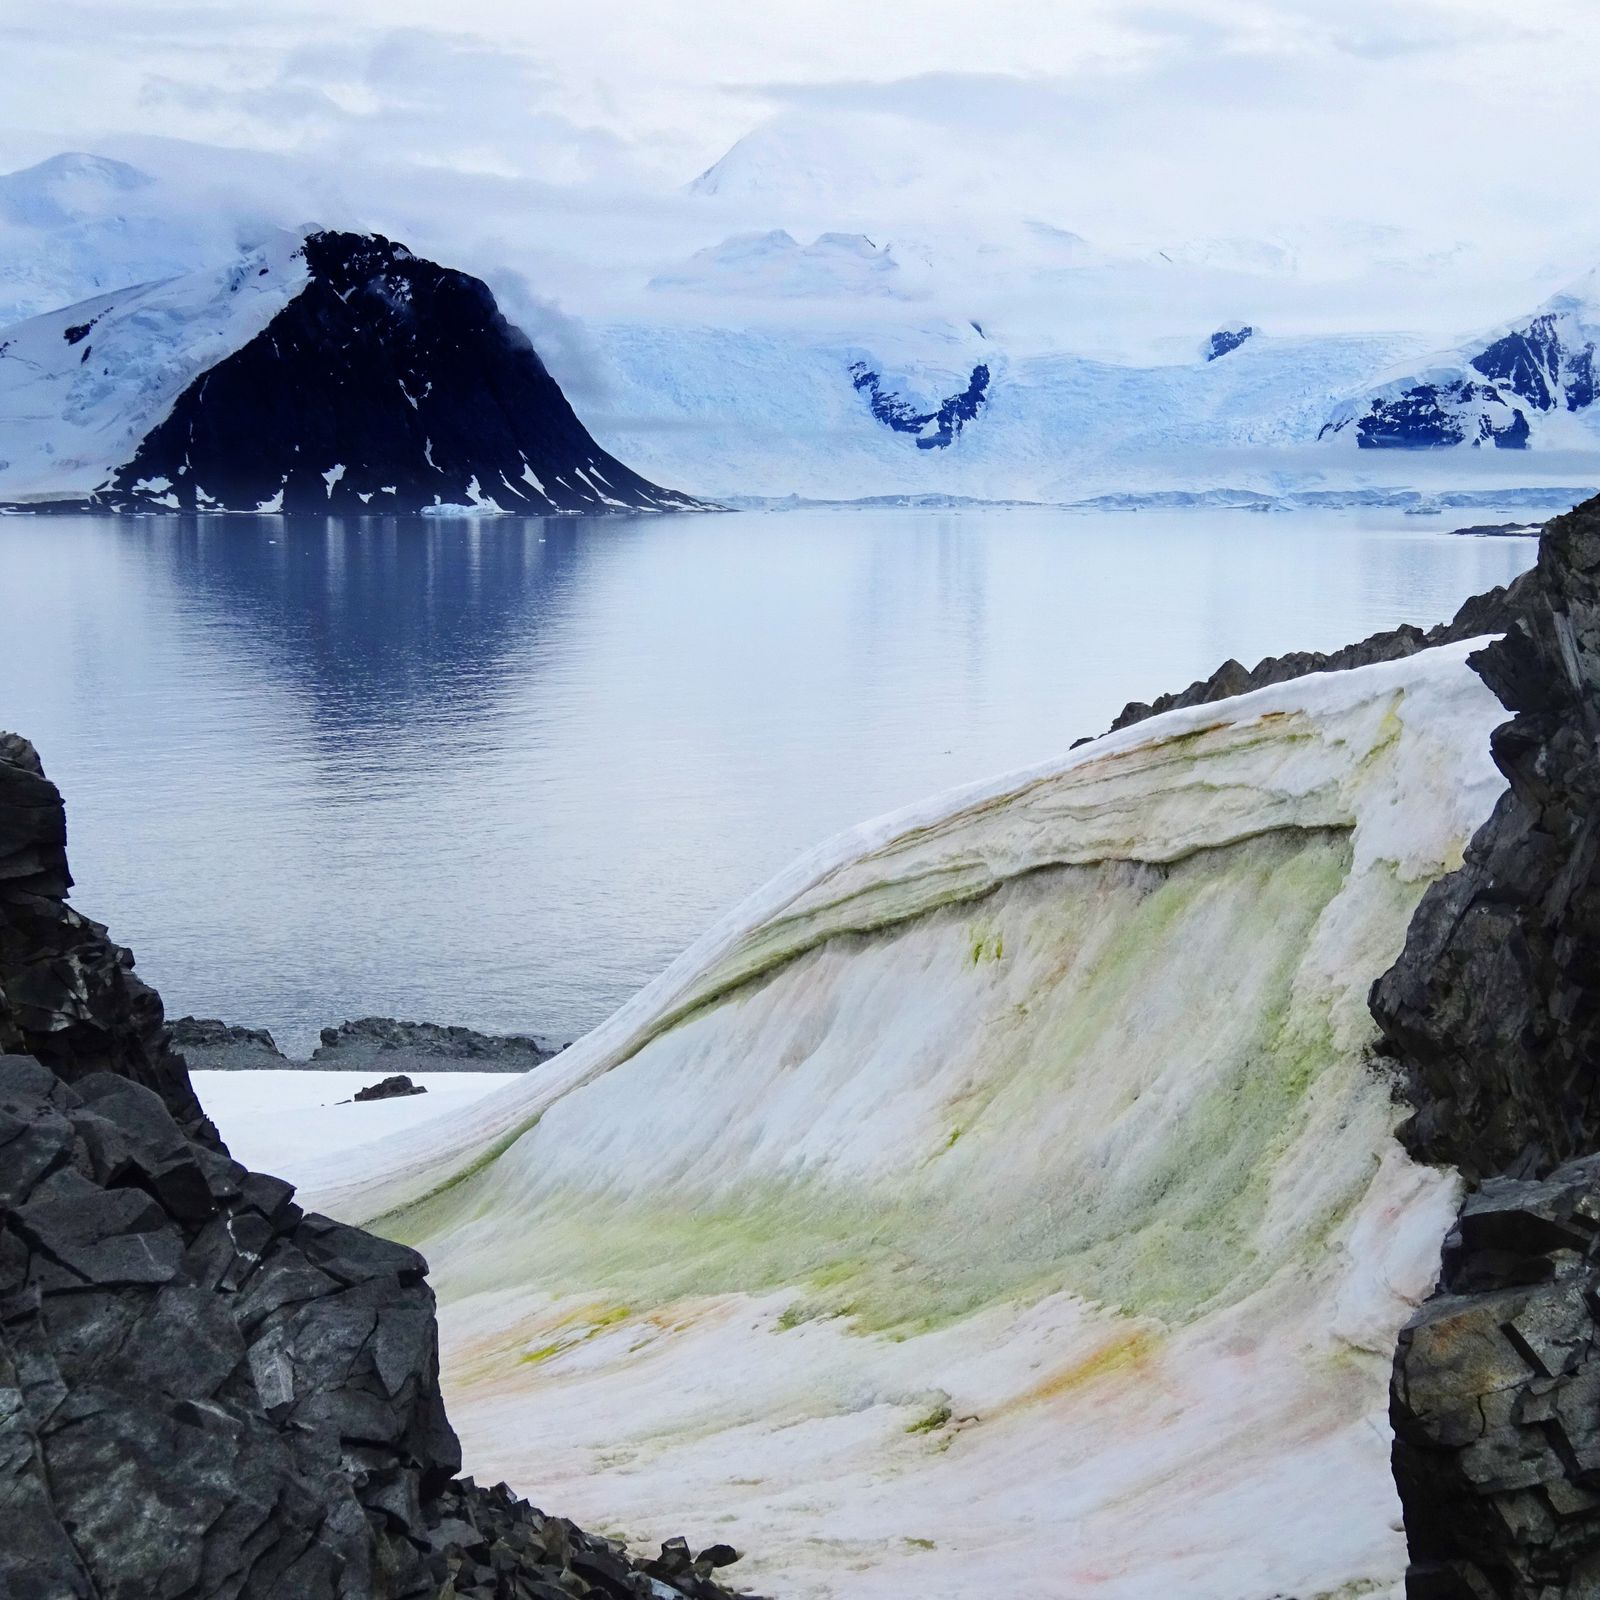 Multi-coloured algae is seen blooming in green and red on Anchorage Island, Antarctica.